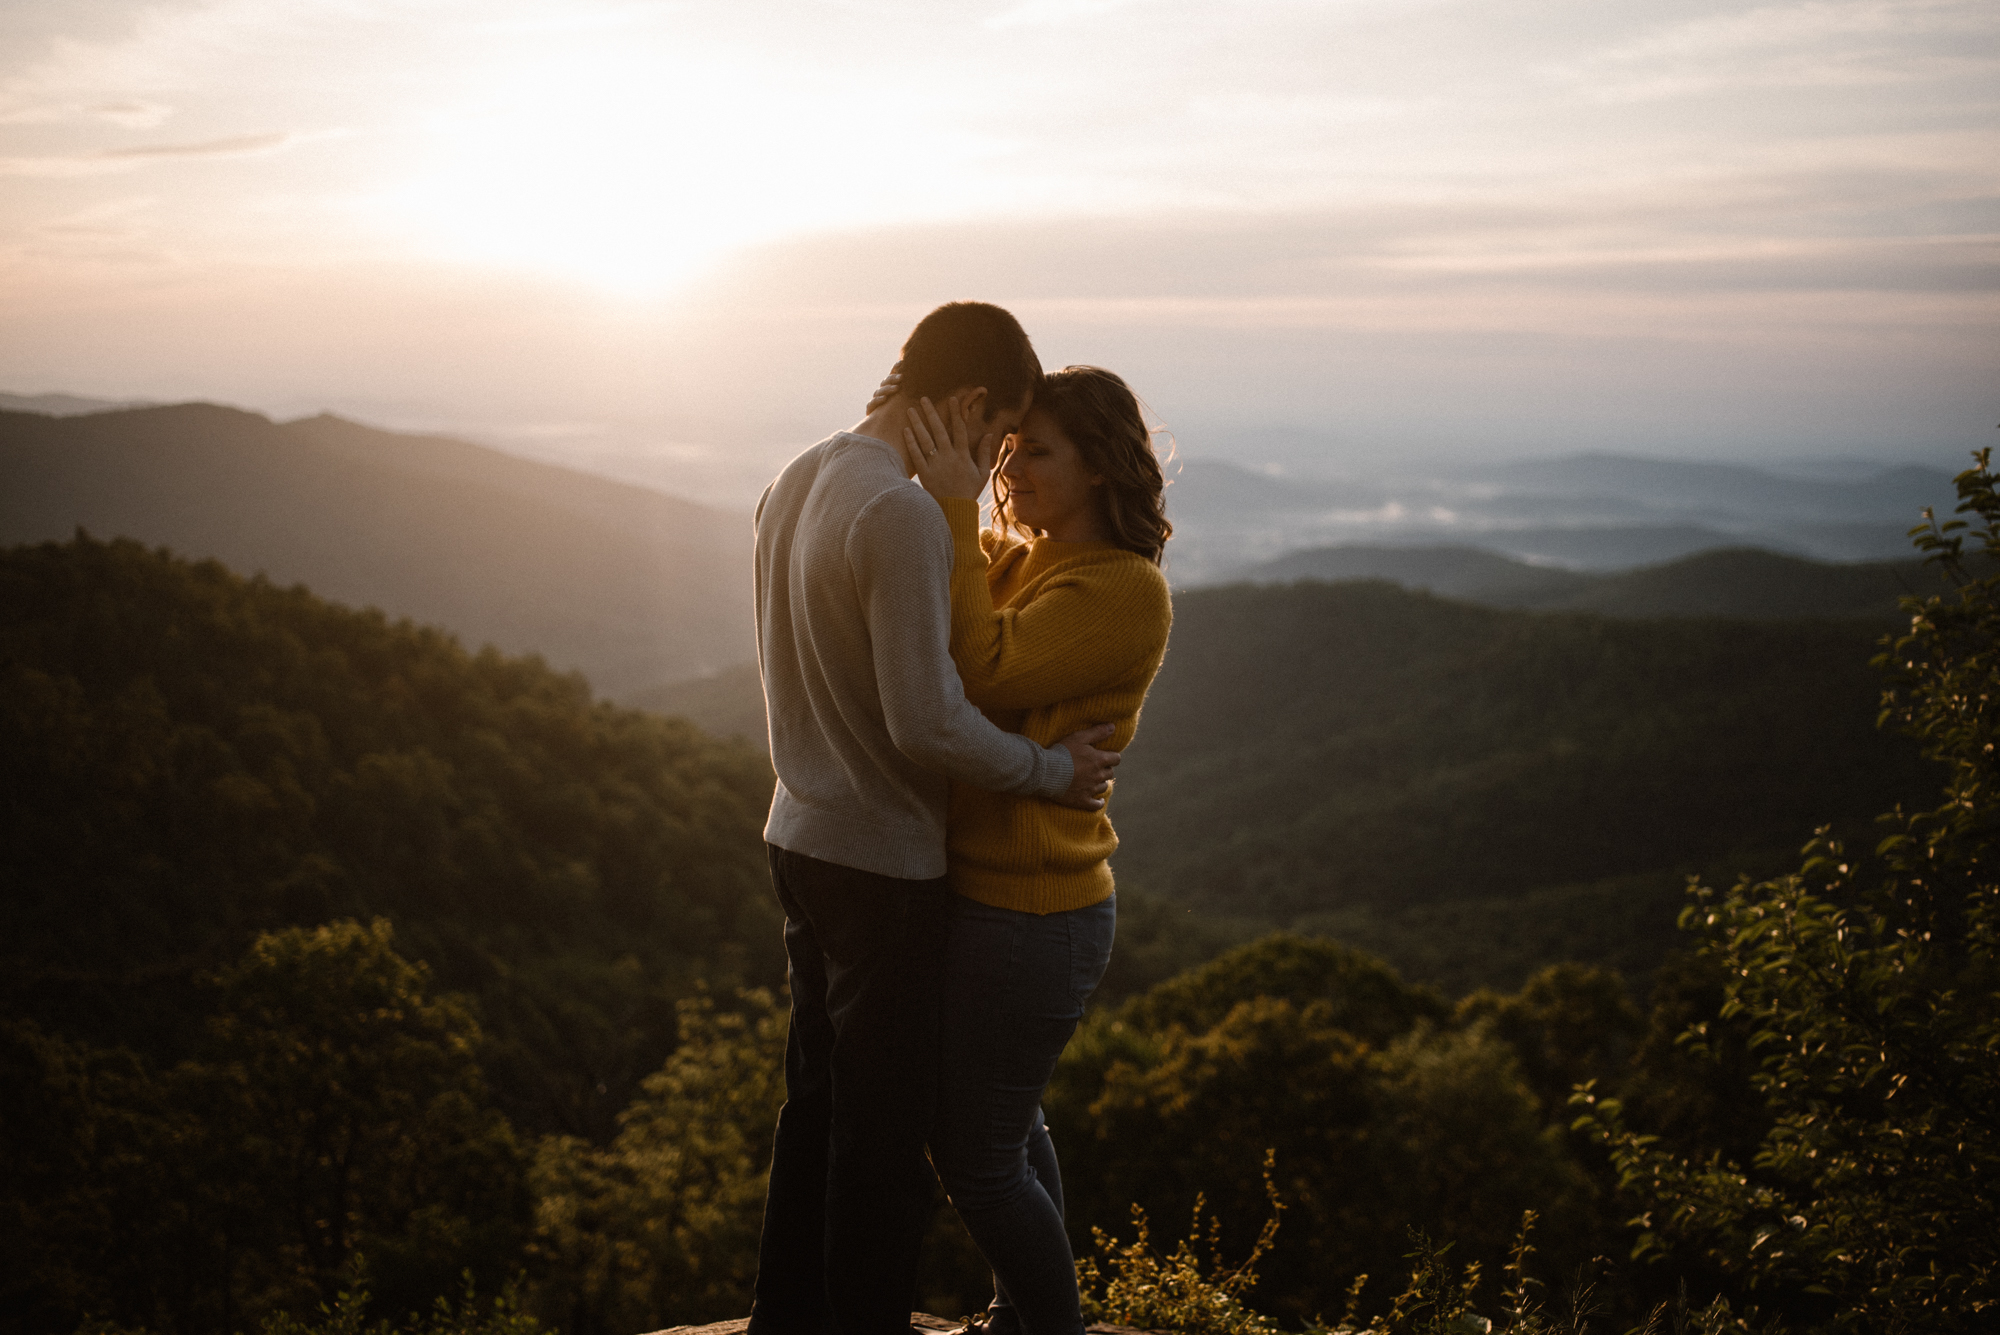 Sloane and Evan Sunrise Engagement Session in Shenandoah National Park - Things to Do in Luray Virginia - Adventurous Couple Photo Shoot White Sails Creative_13.jpg